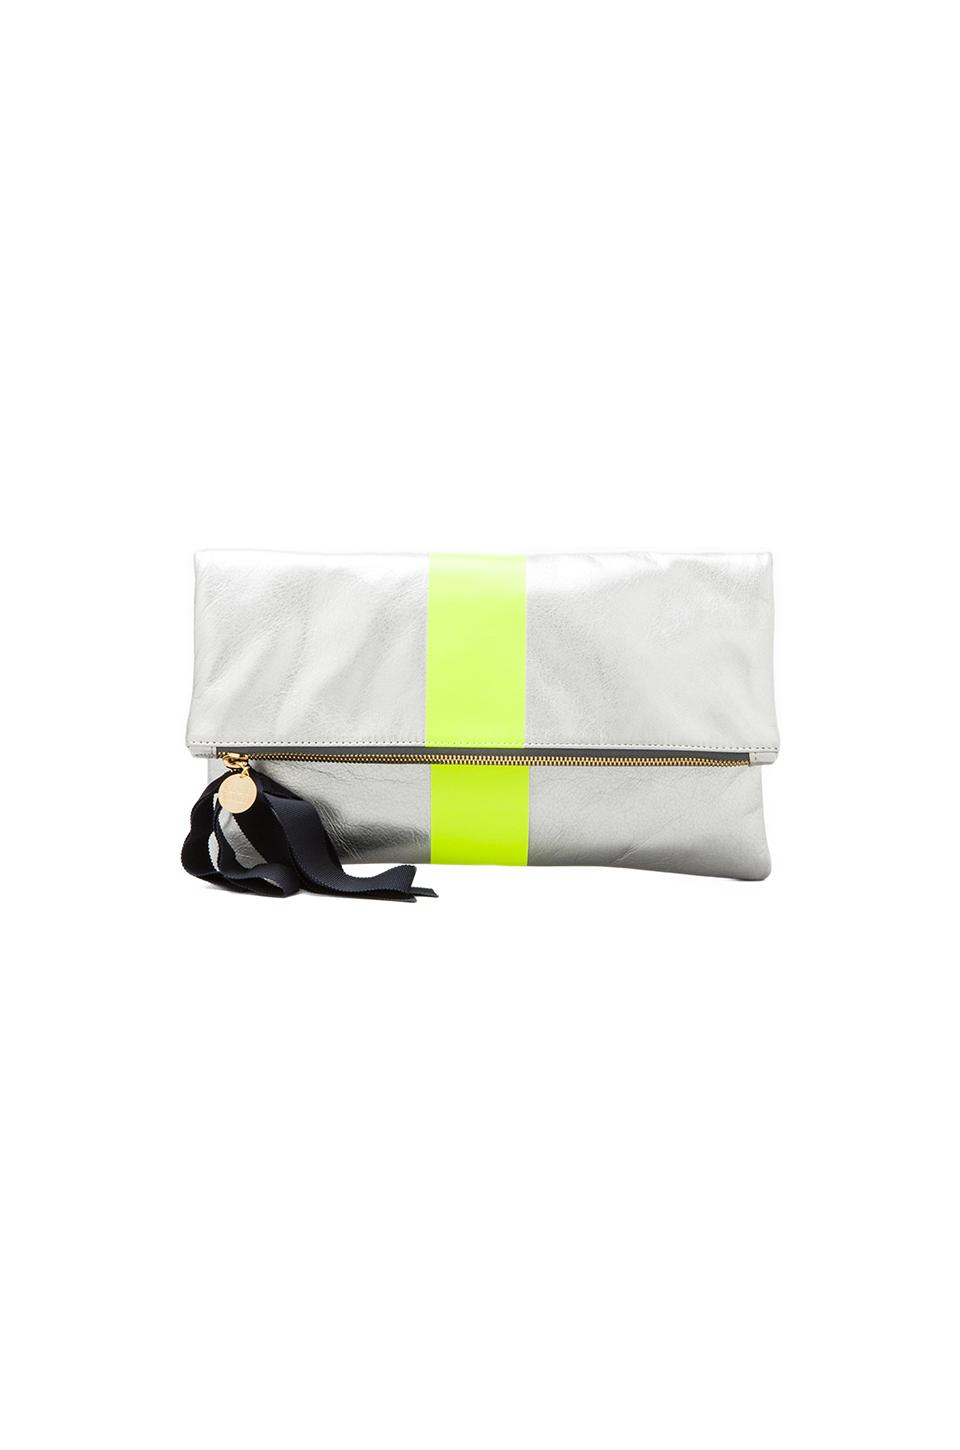 Clare V. Foldover Clutch Stripe in Silver & Neon Yellow